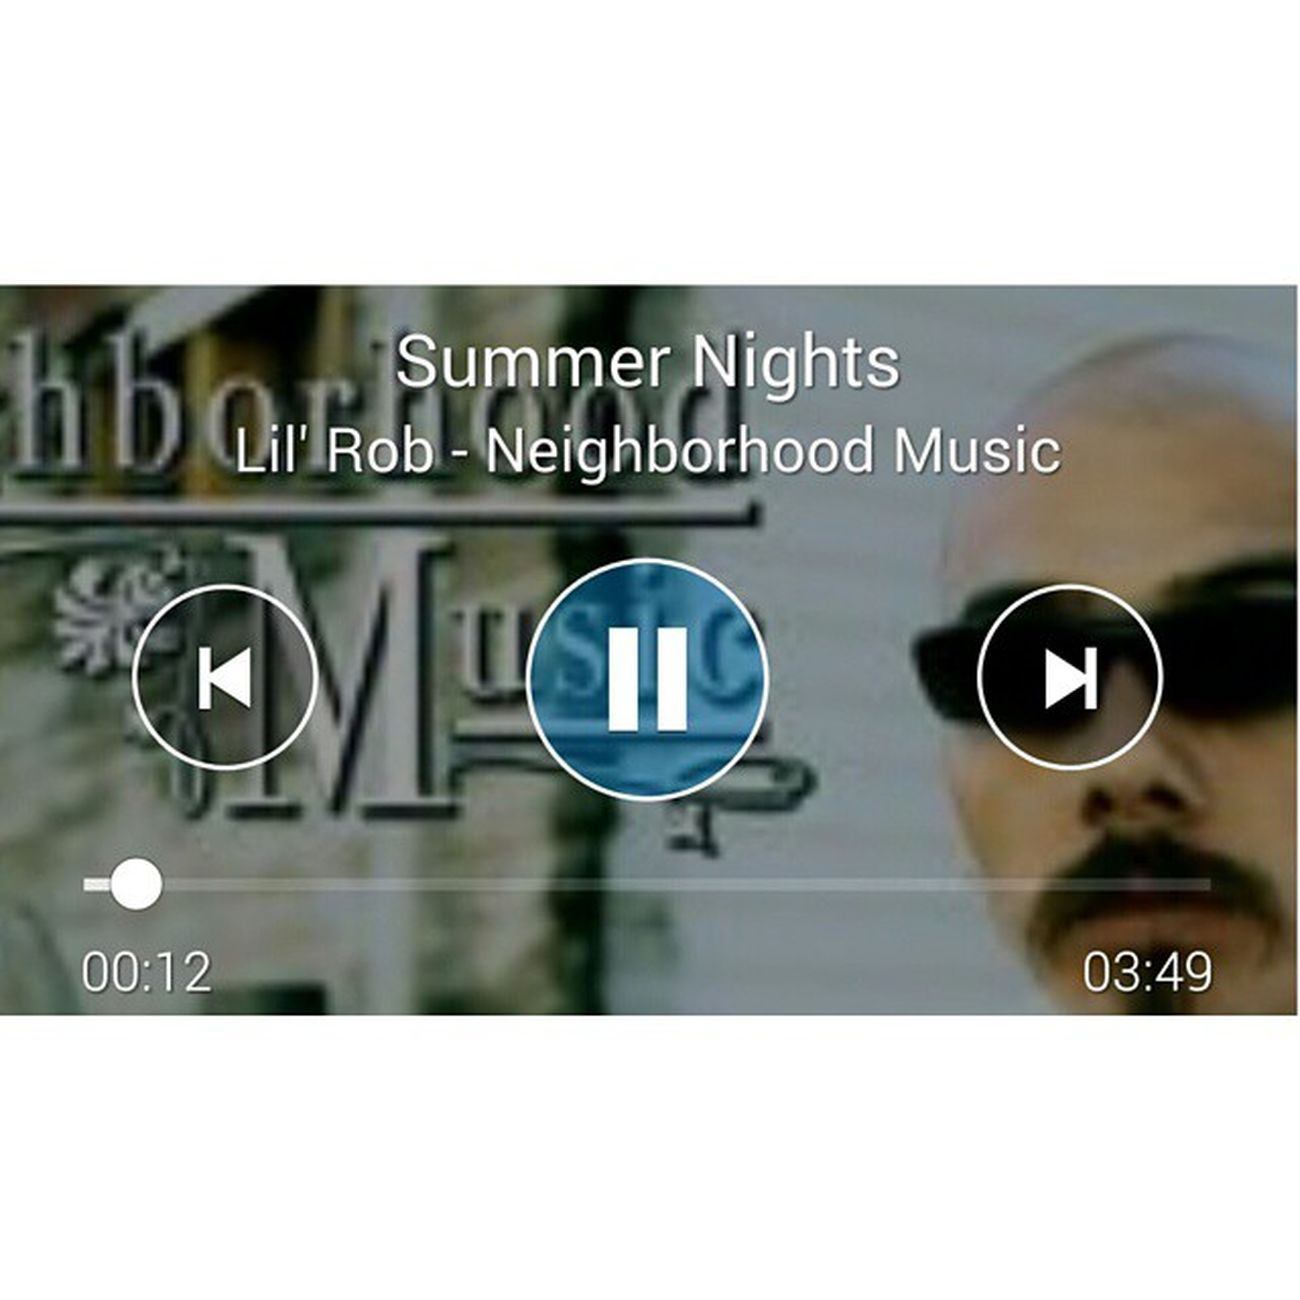 Who recalls having this song on repeat back then? Oh man, if I bump this around my hood, I might get shot 😅😆😂😨 Jk SummerNights Summerisntover Justsaying lol throwback lilrob